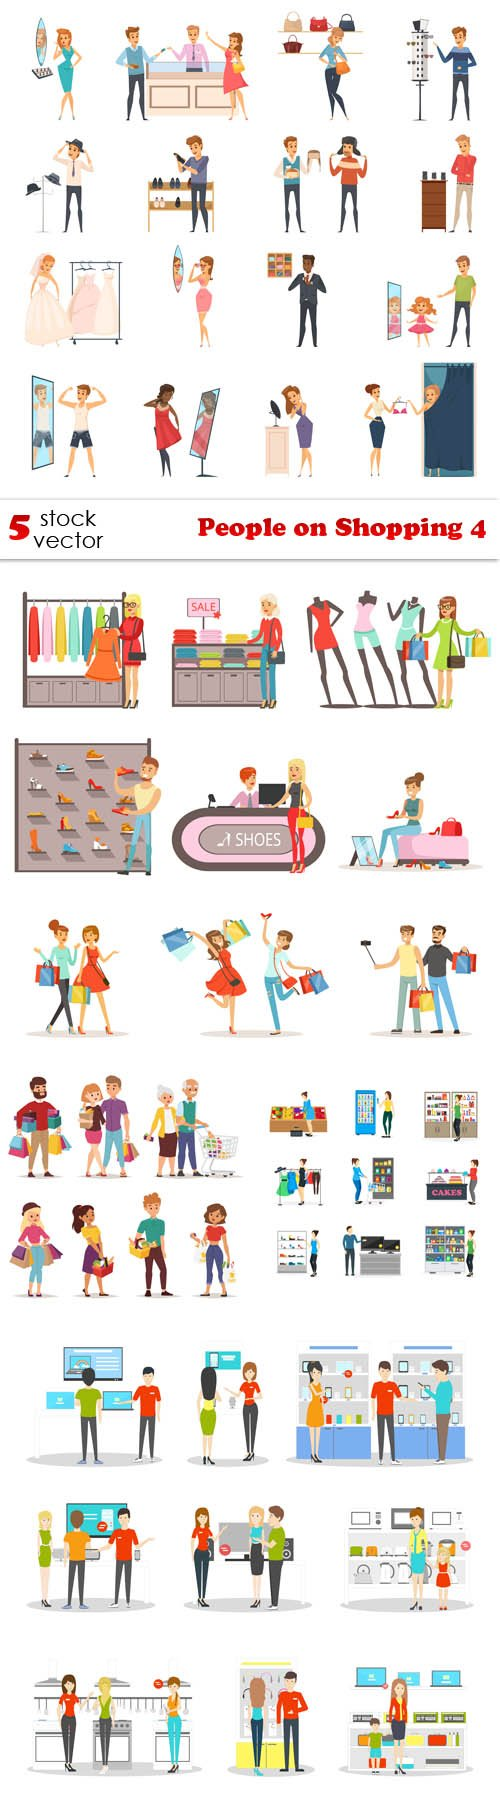 Vectors - People on Shopping 4